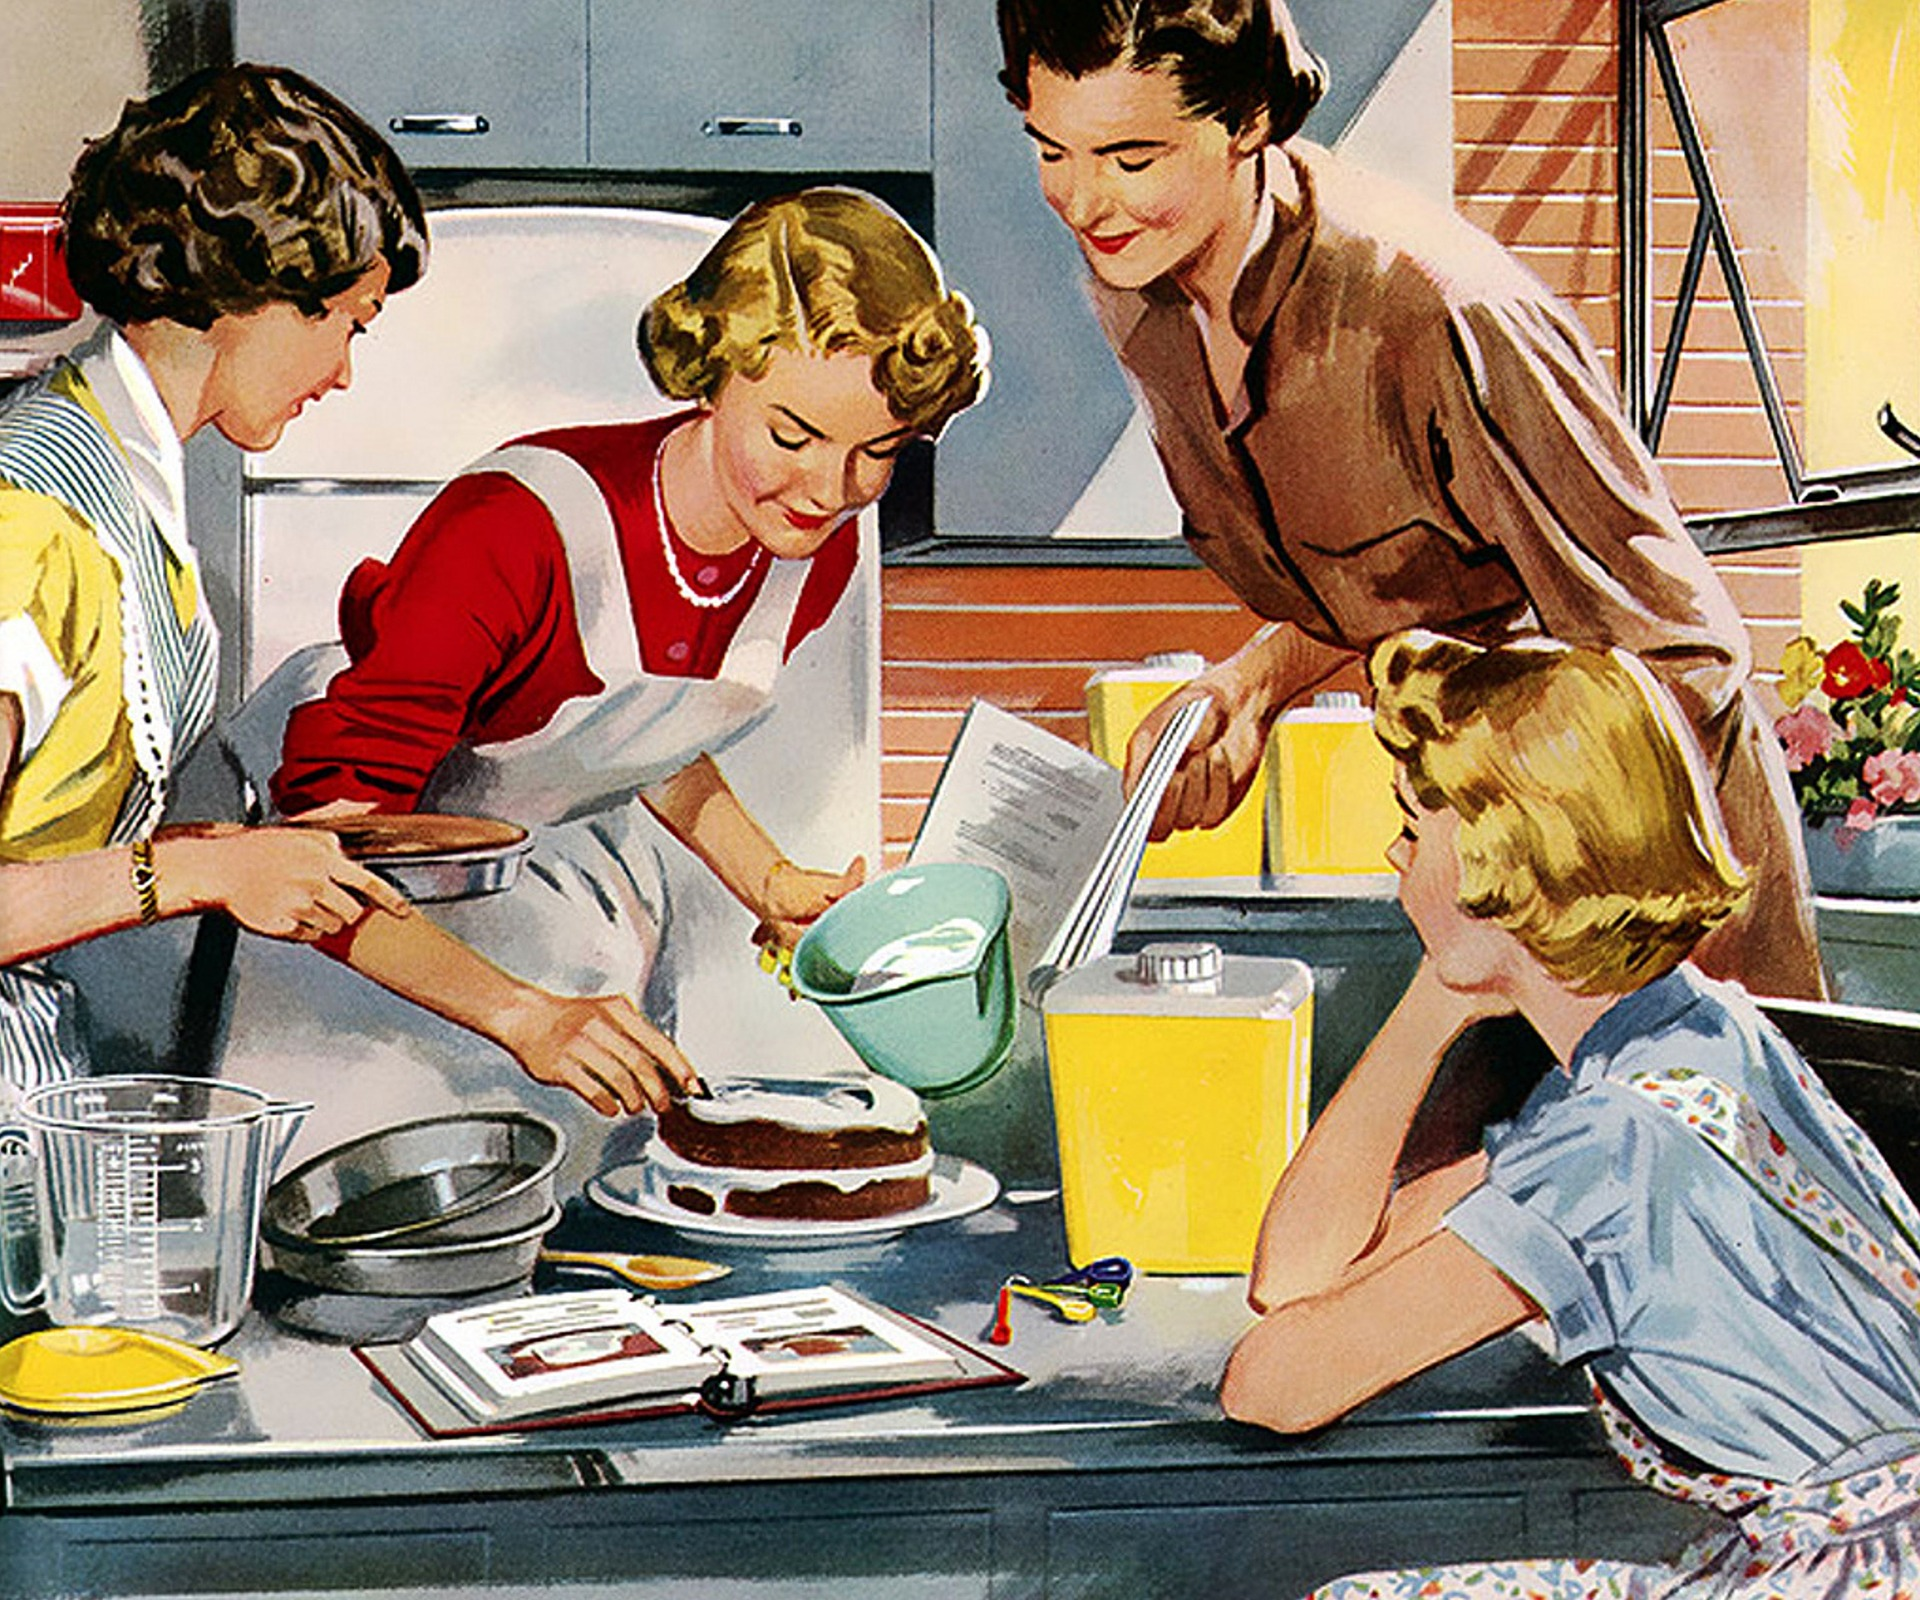 A home cooked meal - a long, long, long, long time ago looked something like this.